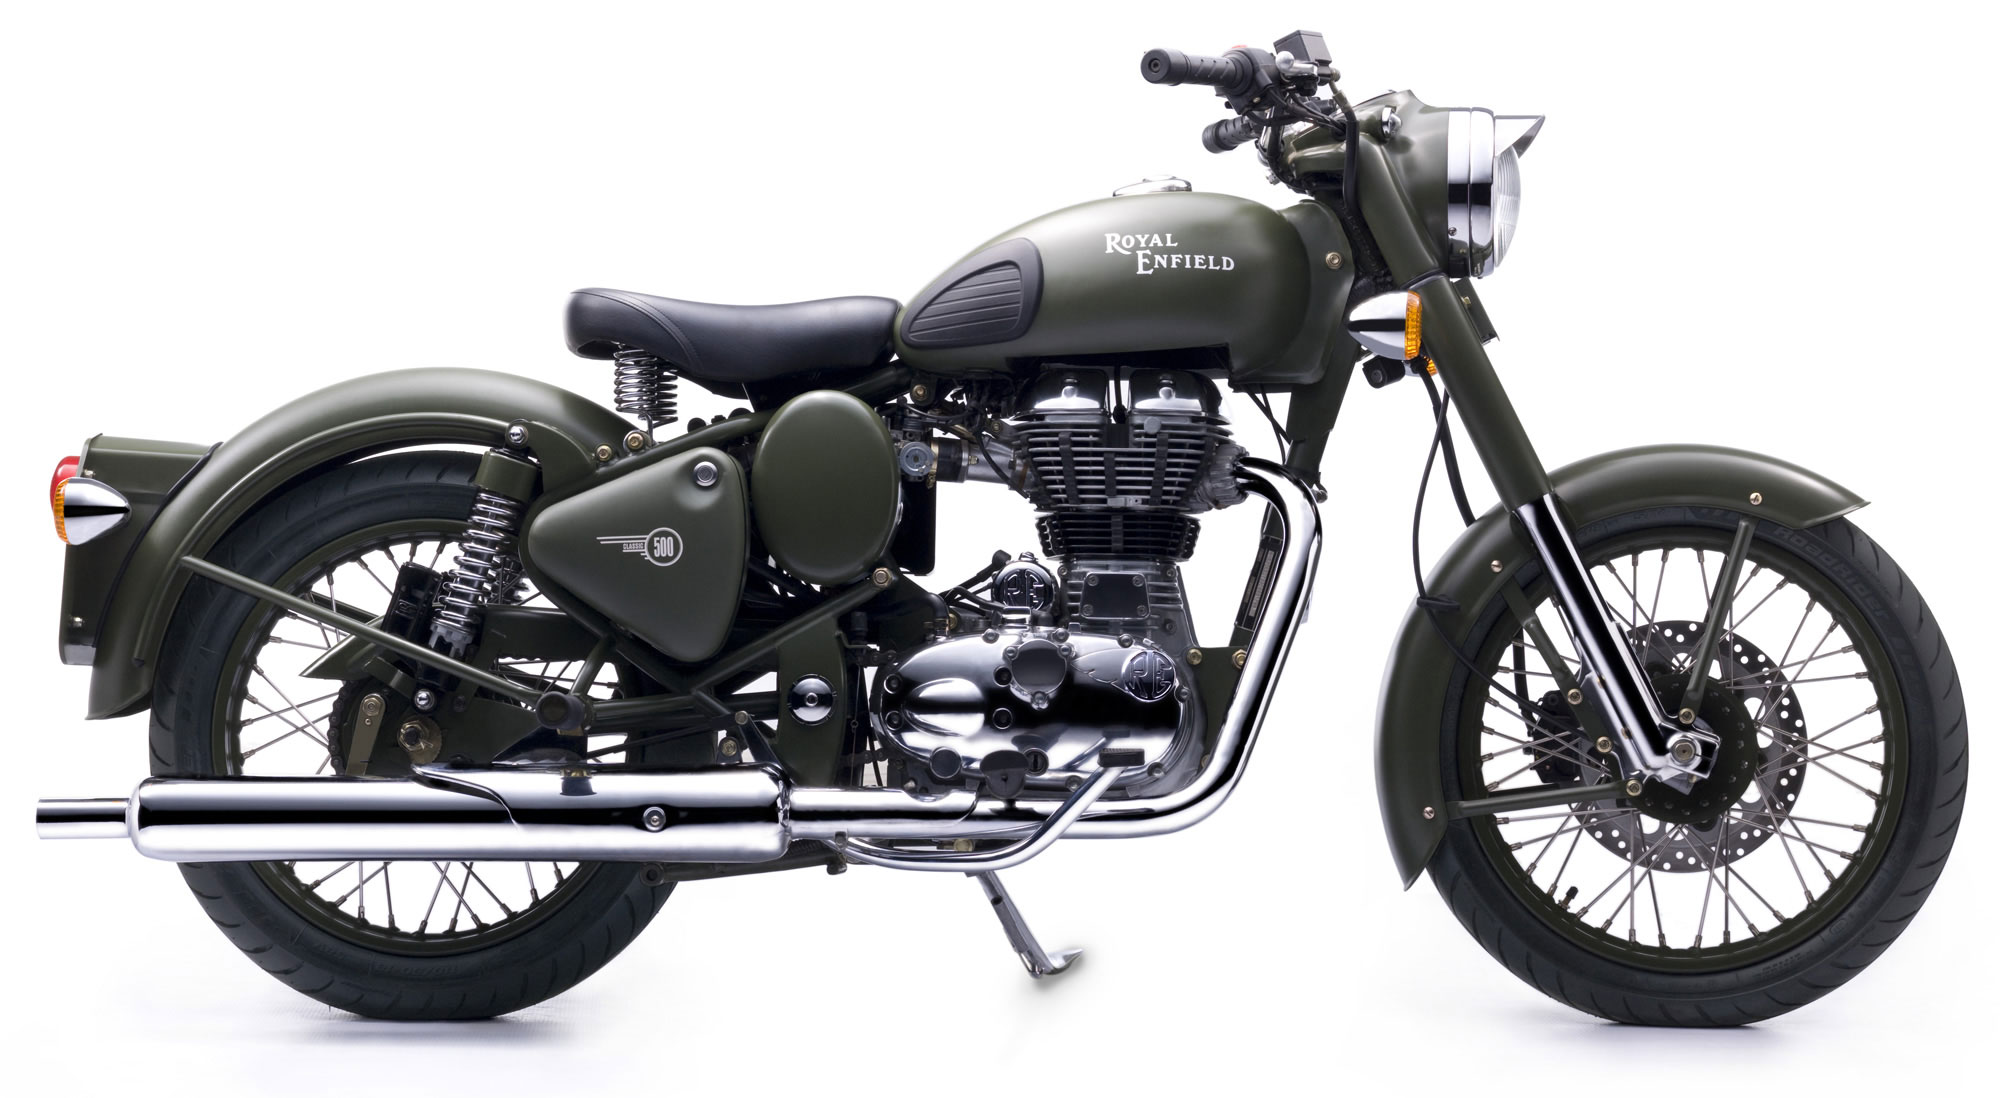 Royal Enfield Bullet 350 Army 1997 images #122771